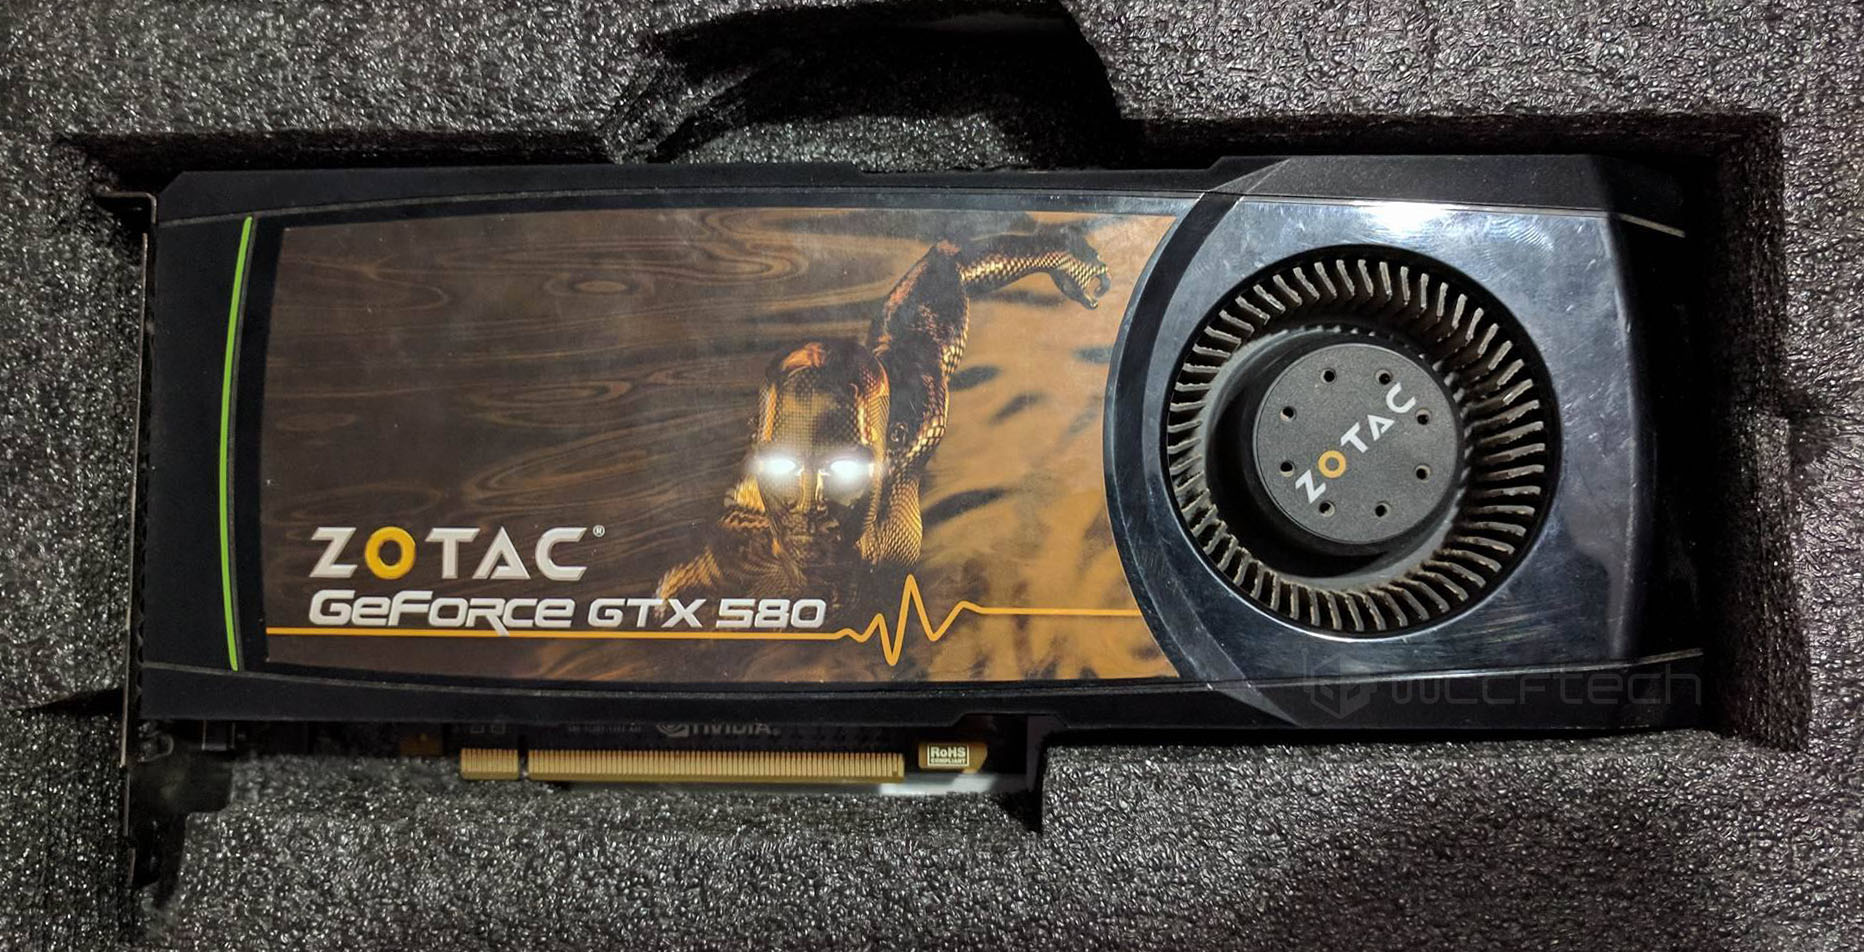 Geforce Gtx 580 Dx 12 Benchmarks Nvidia Enables Dx12 On Power Amplifier Extreme V 480 Xii Has Sneakily Enabled Directx Fermi Based Graphics Cards Which Includes The 400 And 500 Series With Their Latest